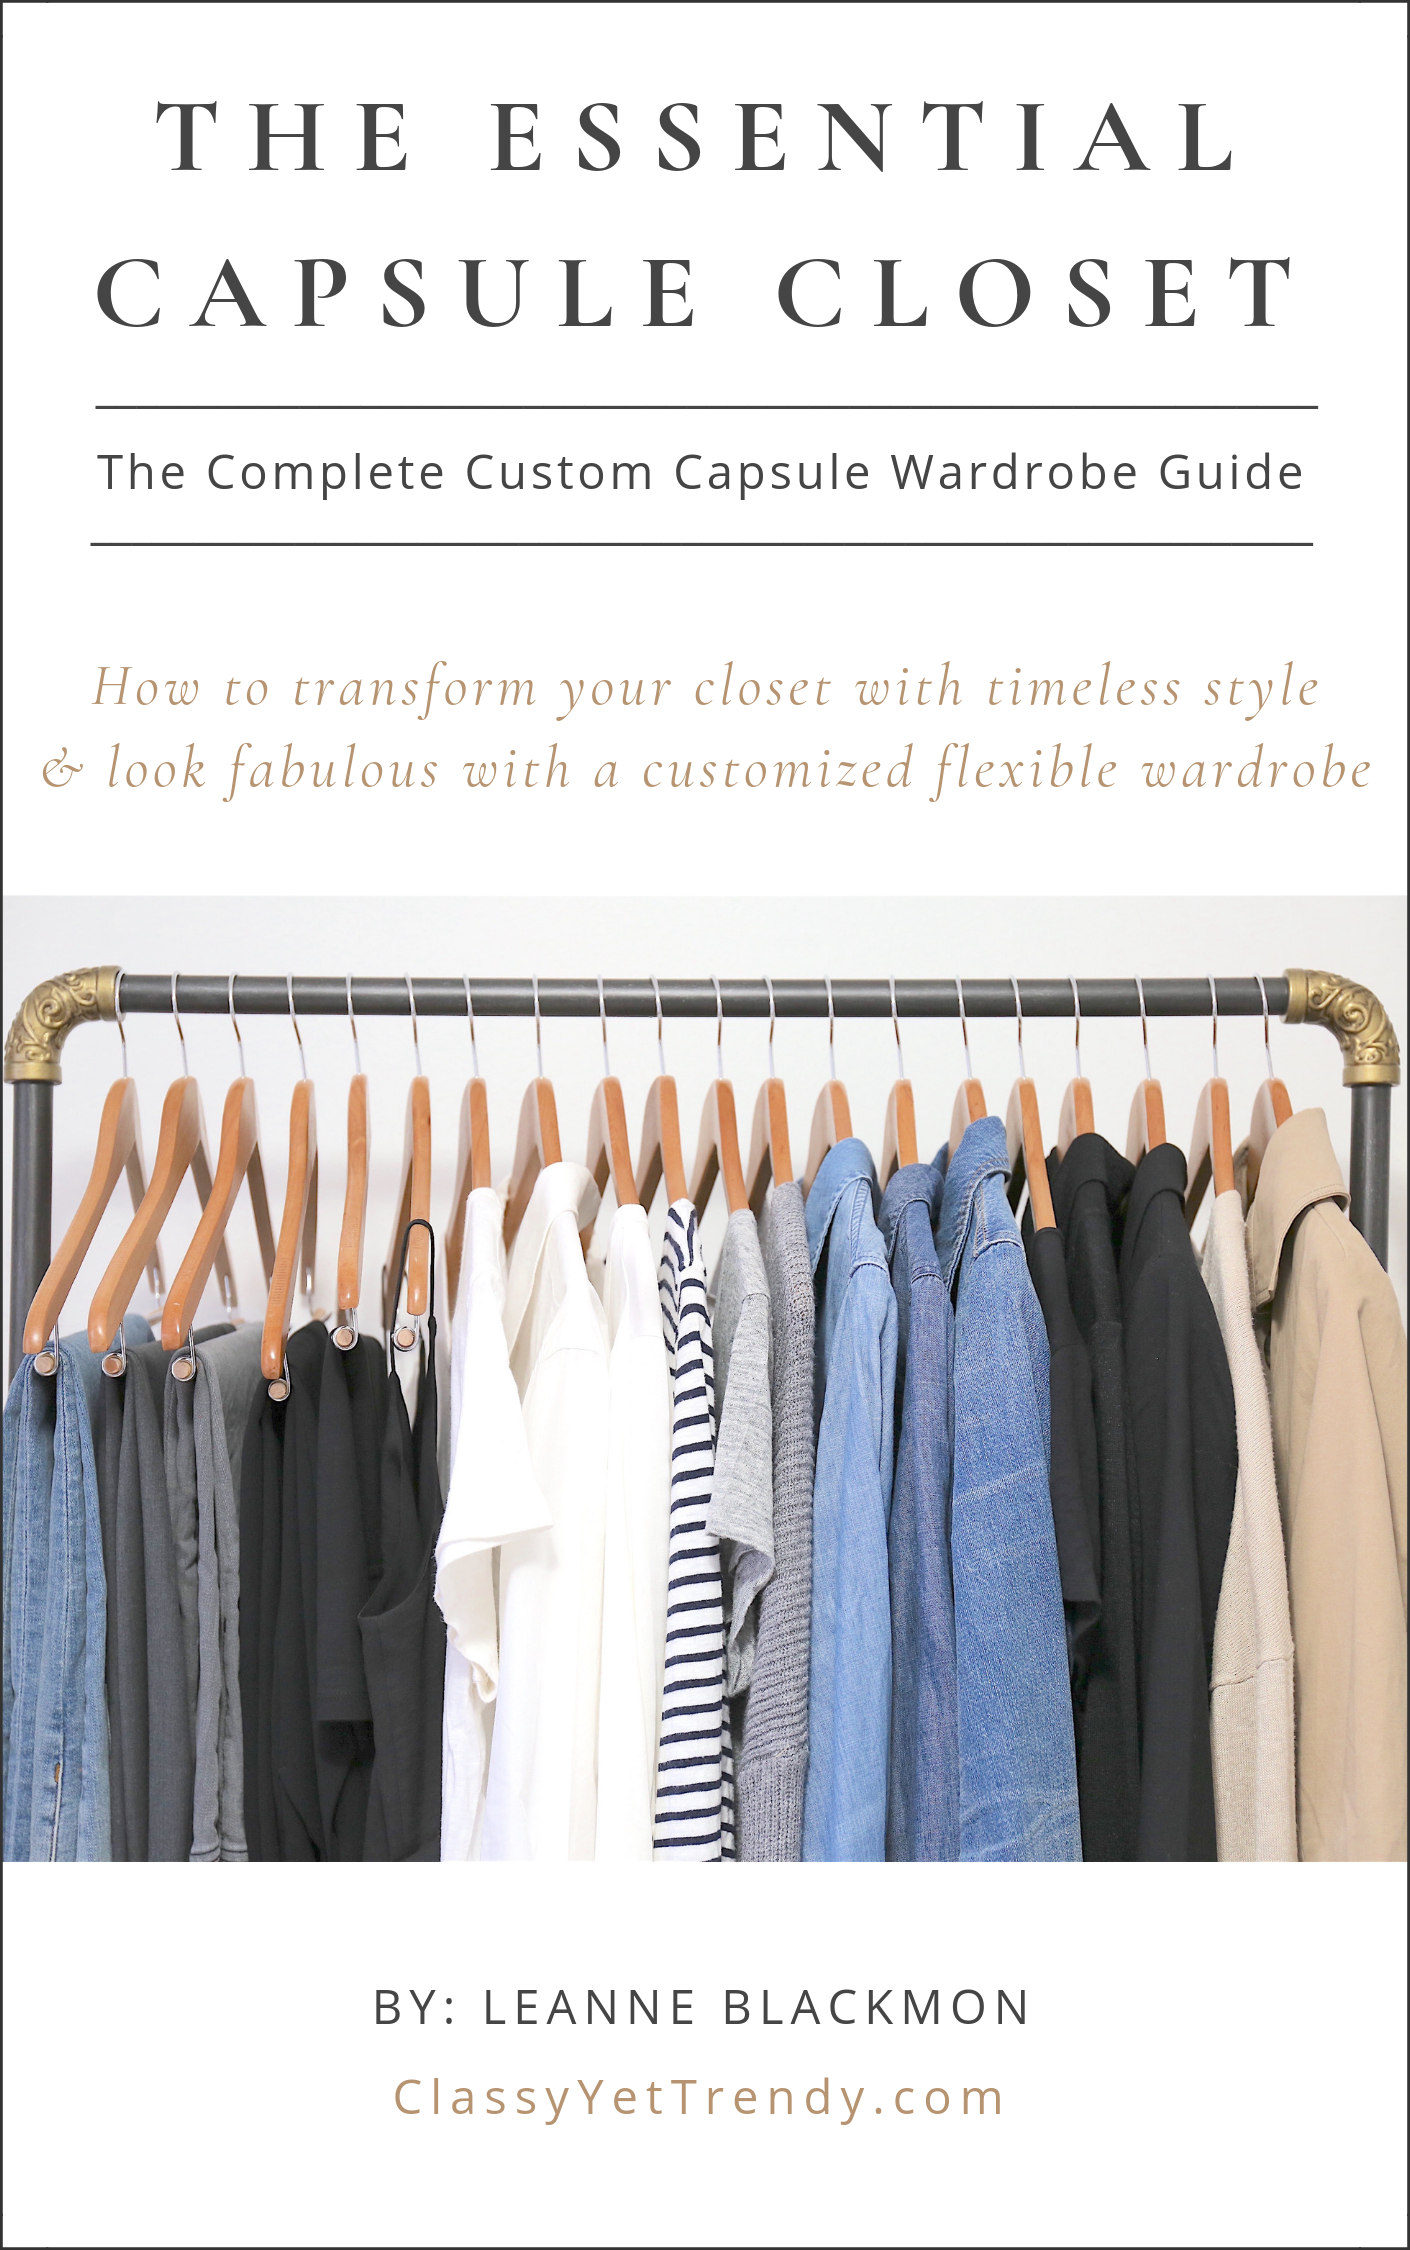 The Essential Capsule Closet cover